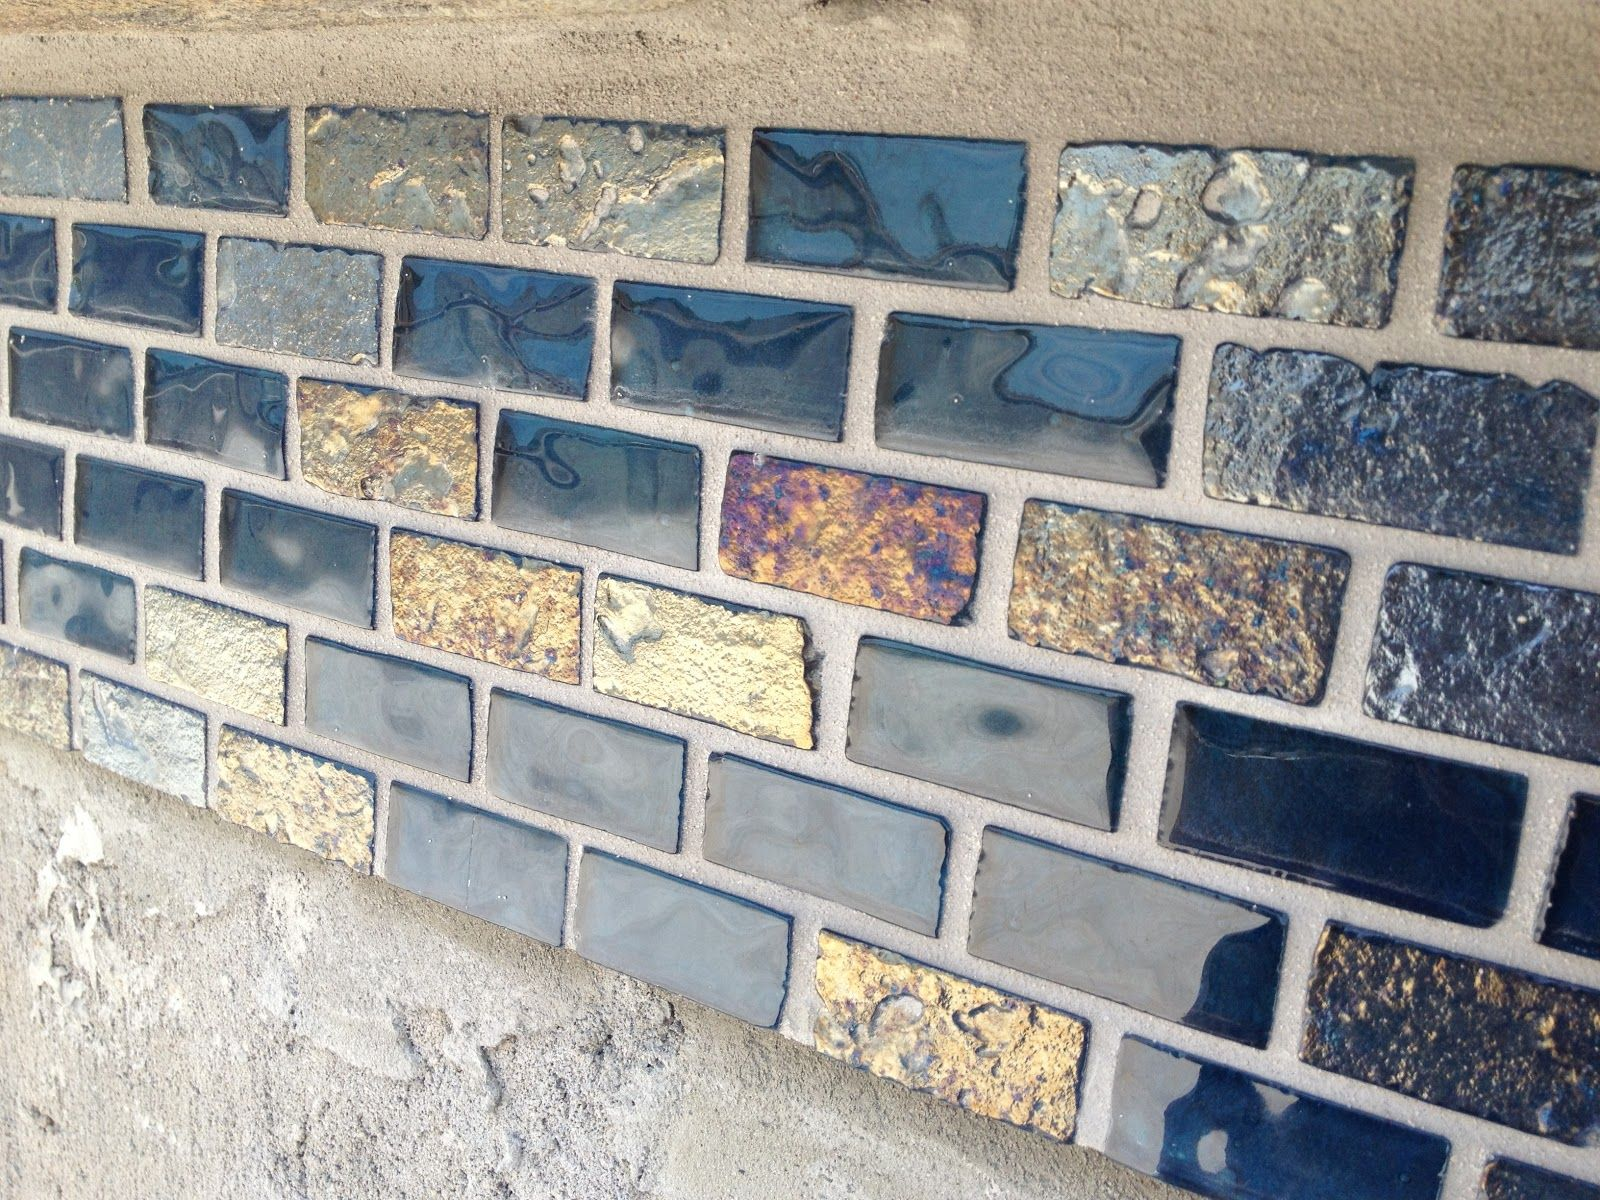 Grout Mosaic Tile Day 64 Glass Tile Part 2 Grout Grouting Glass Tile